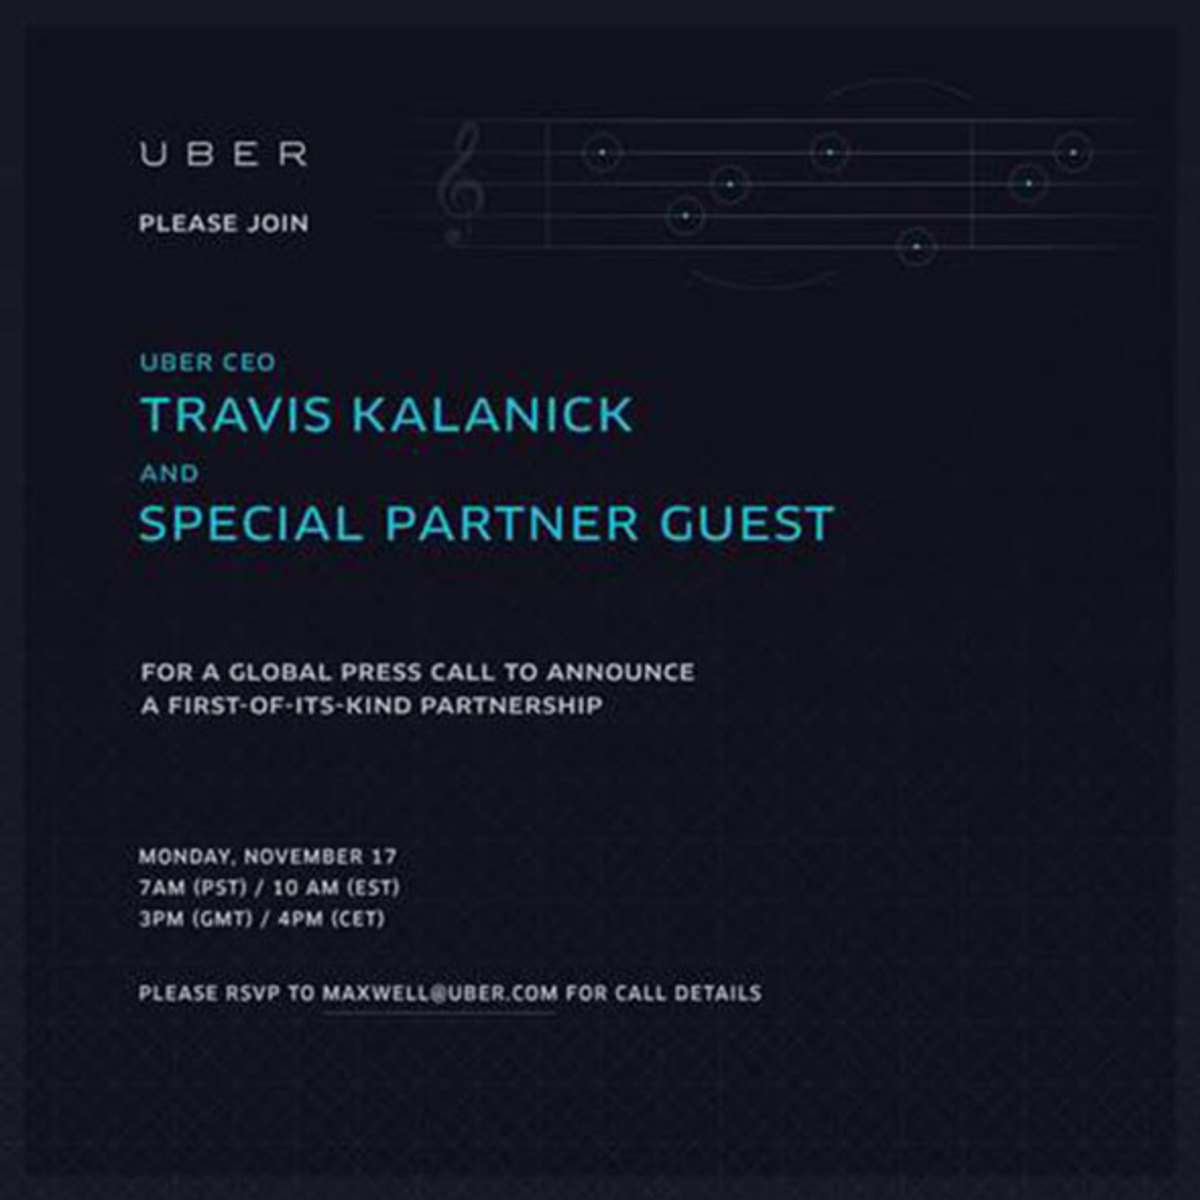 4Pm Cet To Pst uber announces deal with spotify to allow music on the go